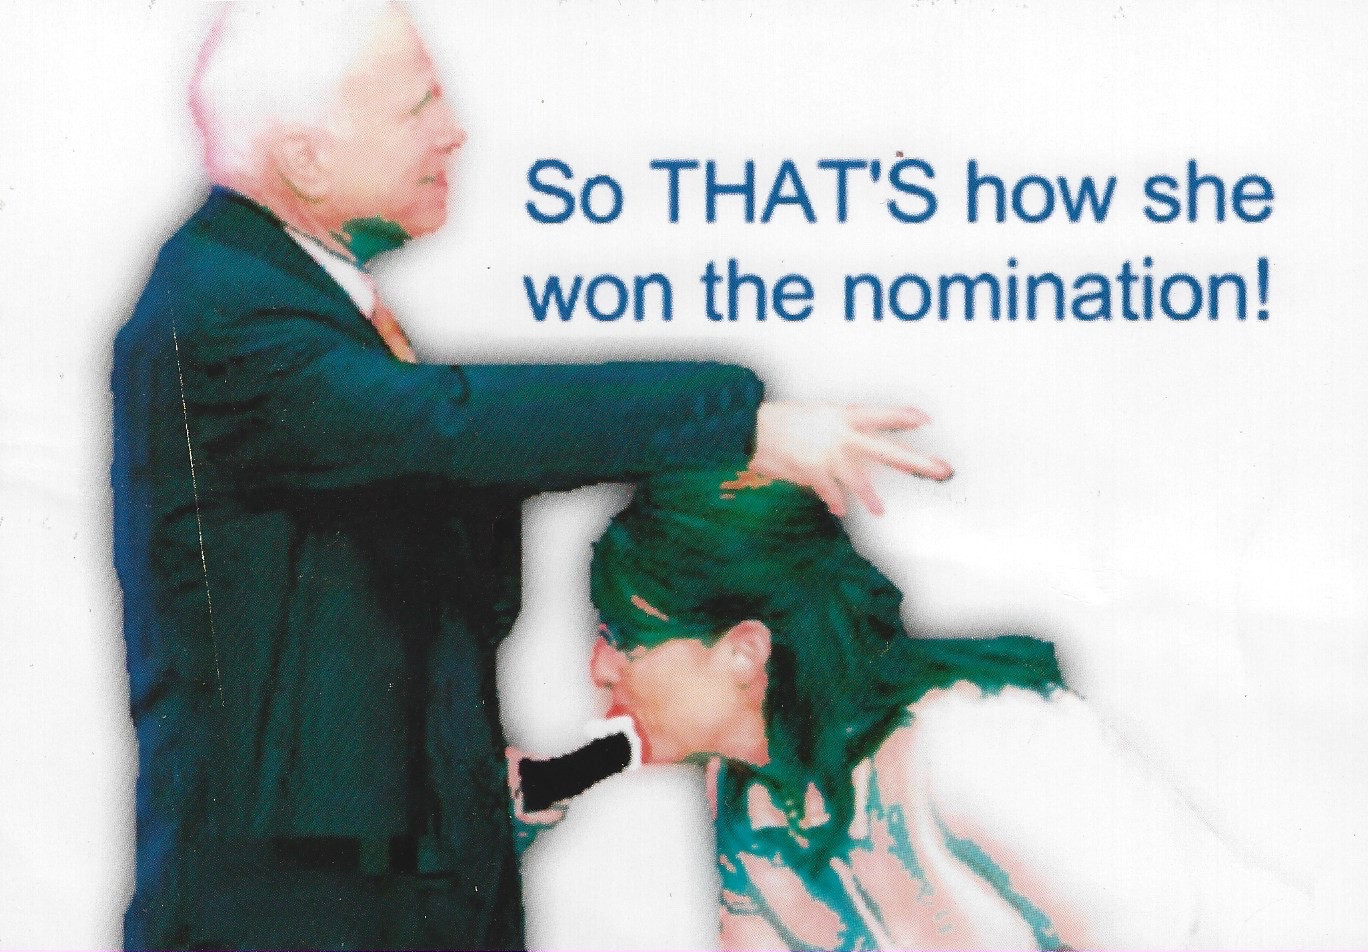 So THAT'S How She Won the Nomination! (McCain & Palin)